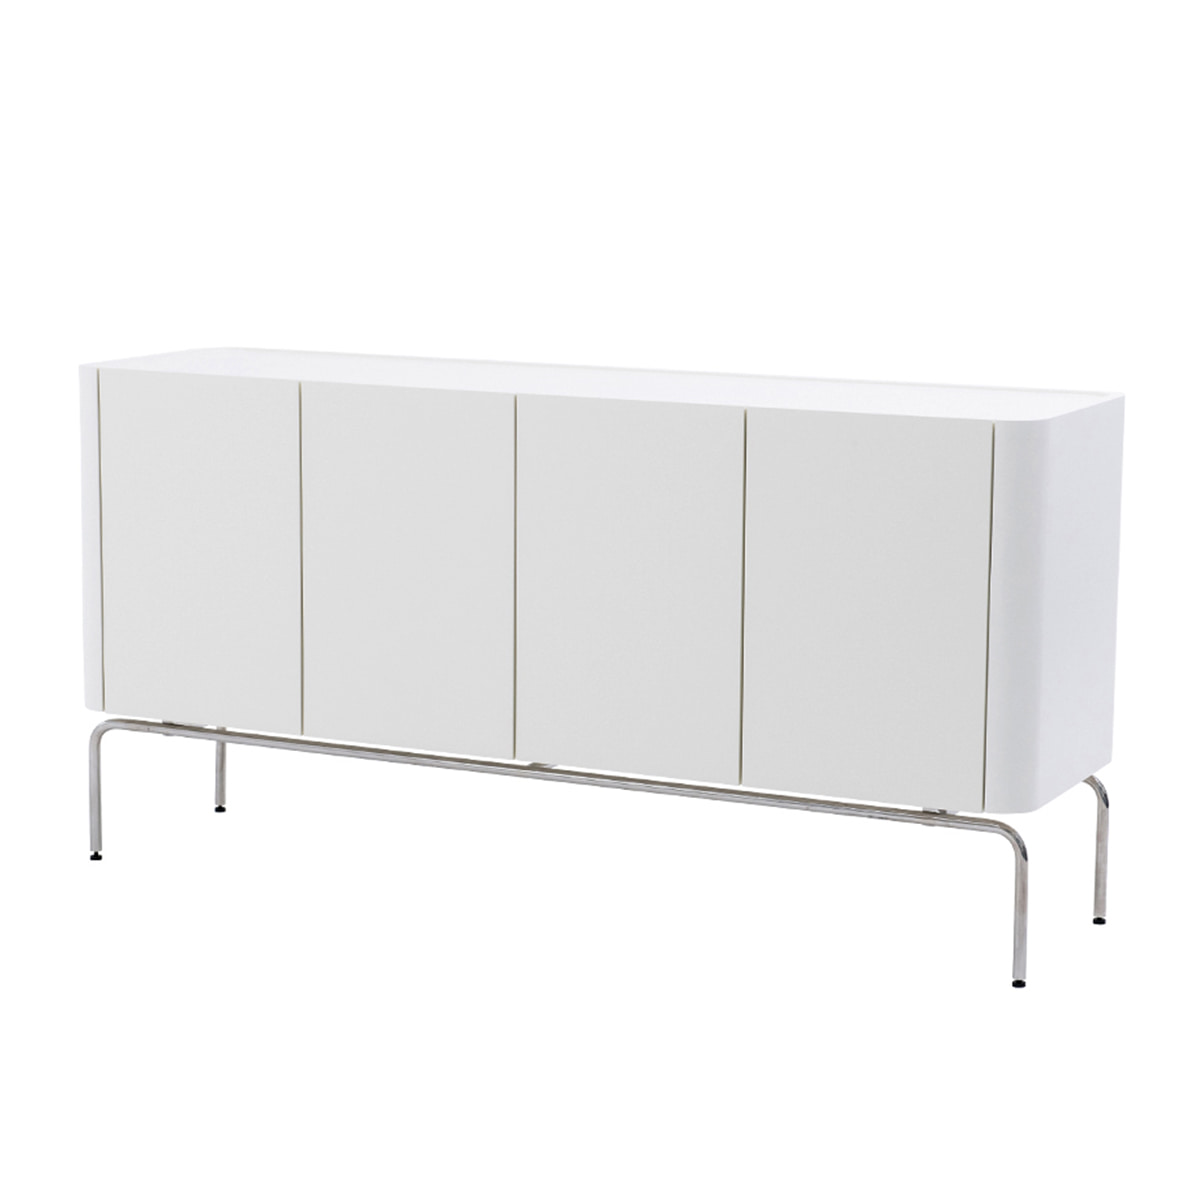 LINEA SIDE BOARD WHITE 1600